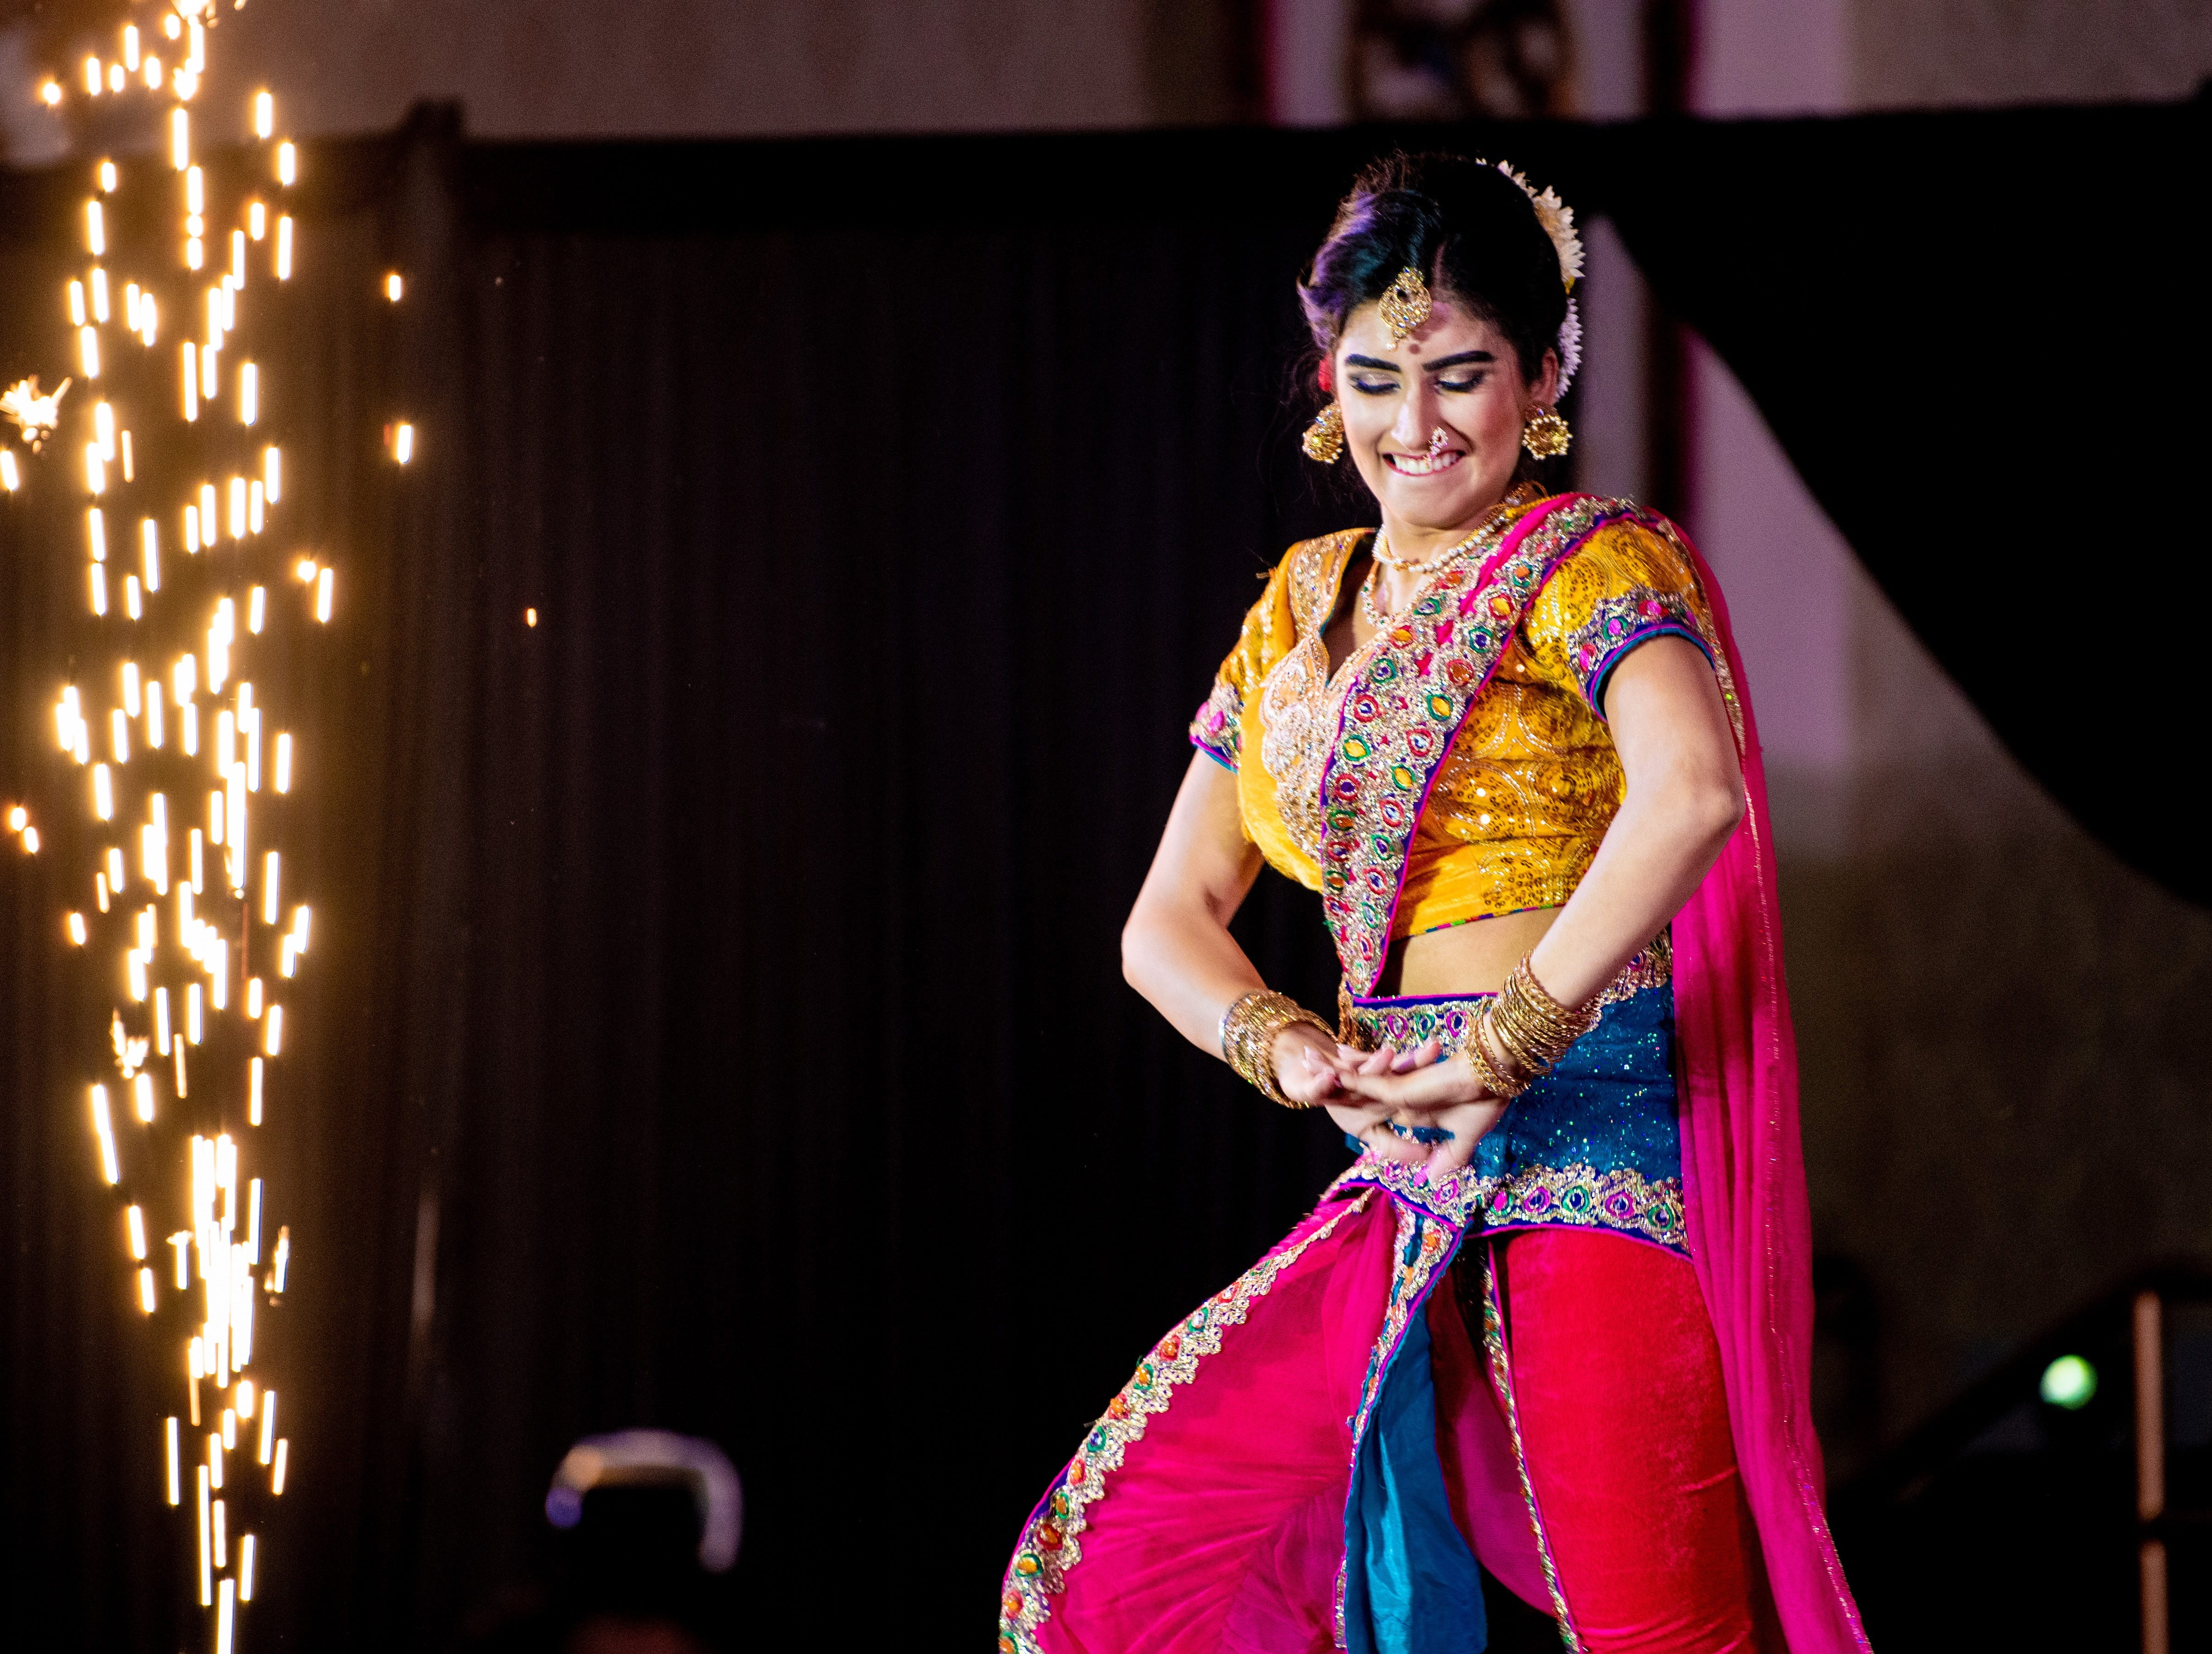 Kim Kumari of the Iselin section of Woodbridge was crowed Miss India USA on Feb. 17 at Royal Alberts Palace in the Fords section of the township. She also won Miss Talented because her Indian folk dance received the highest score in the talent round.